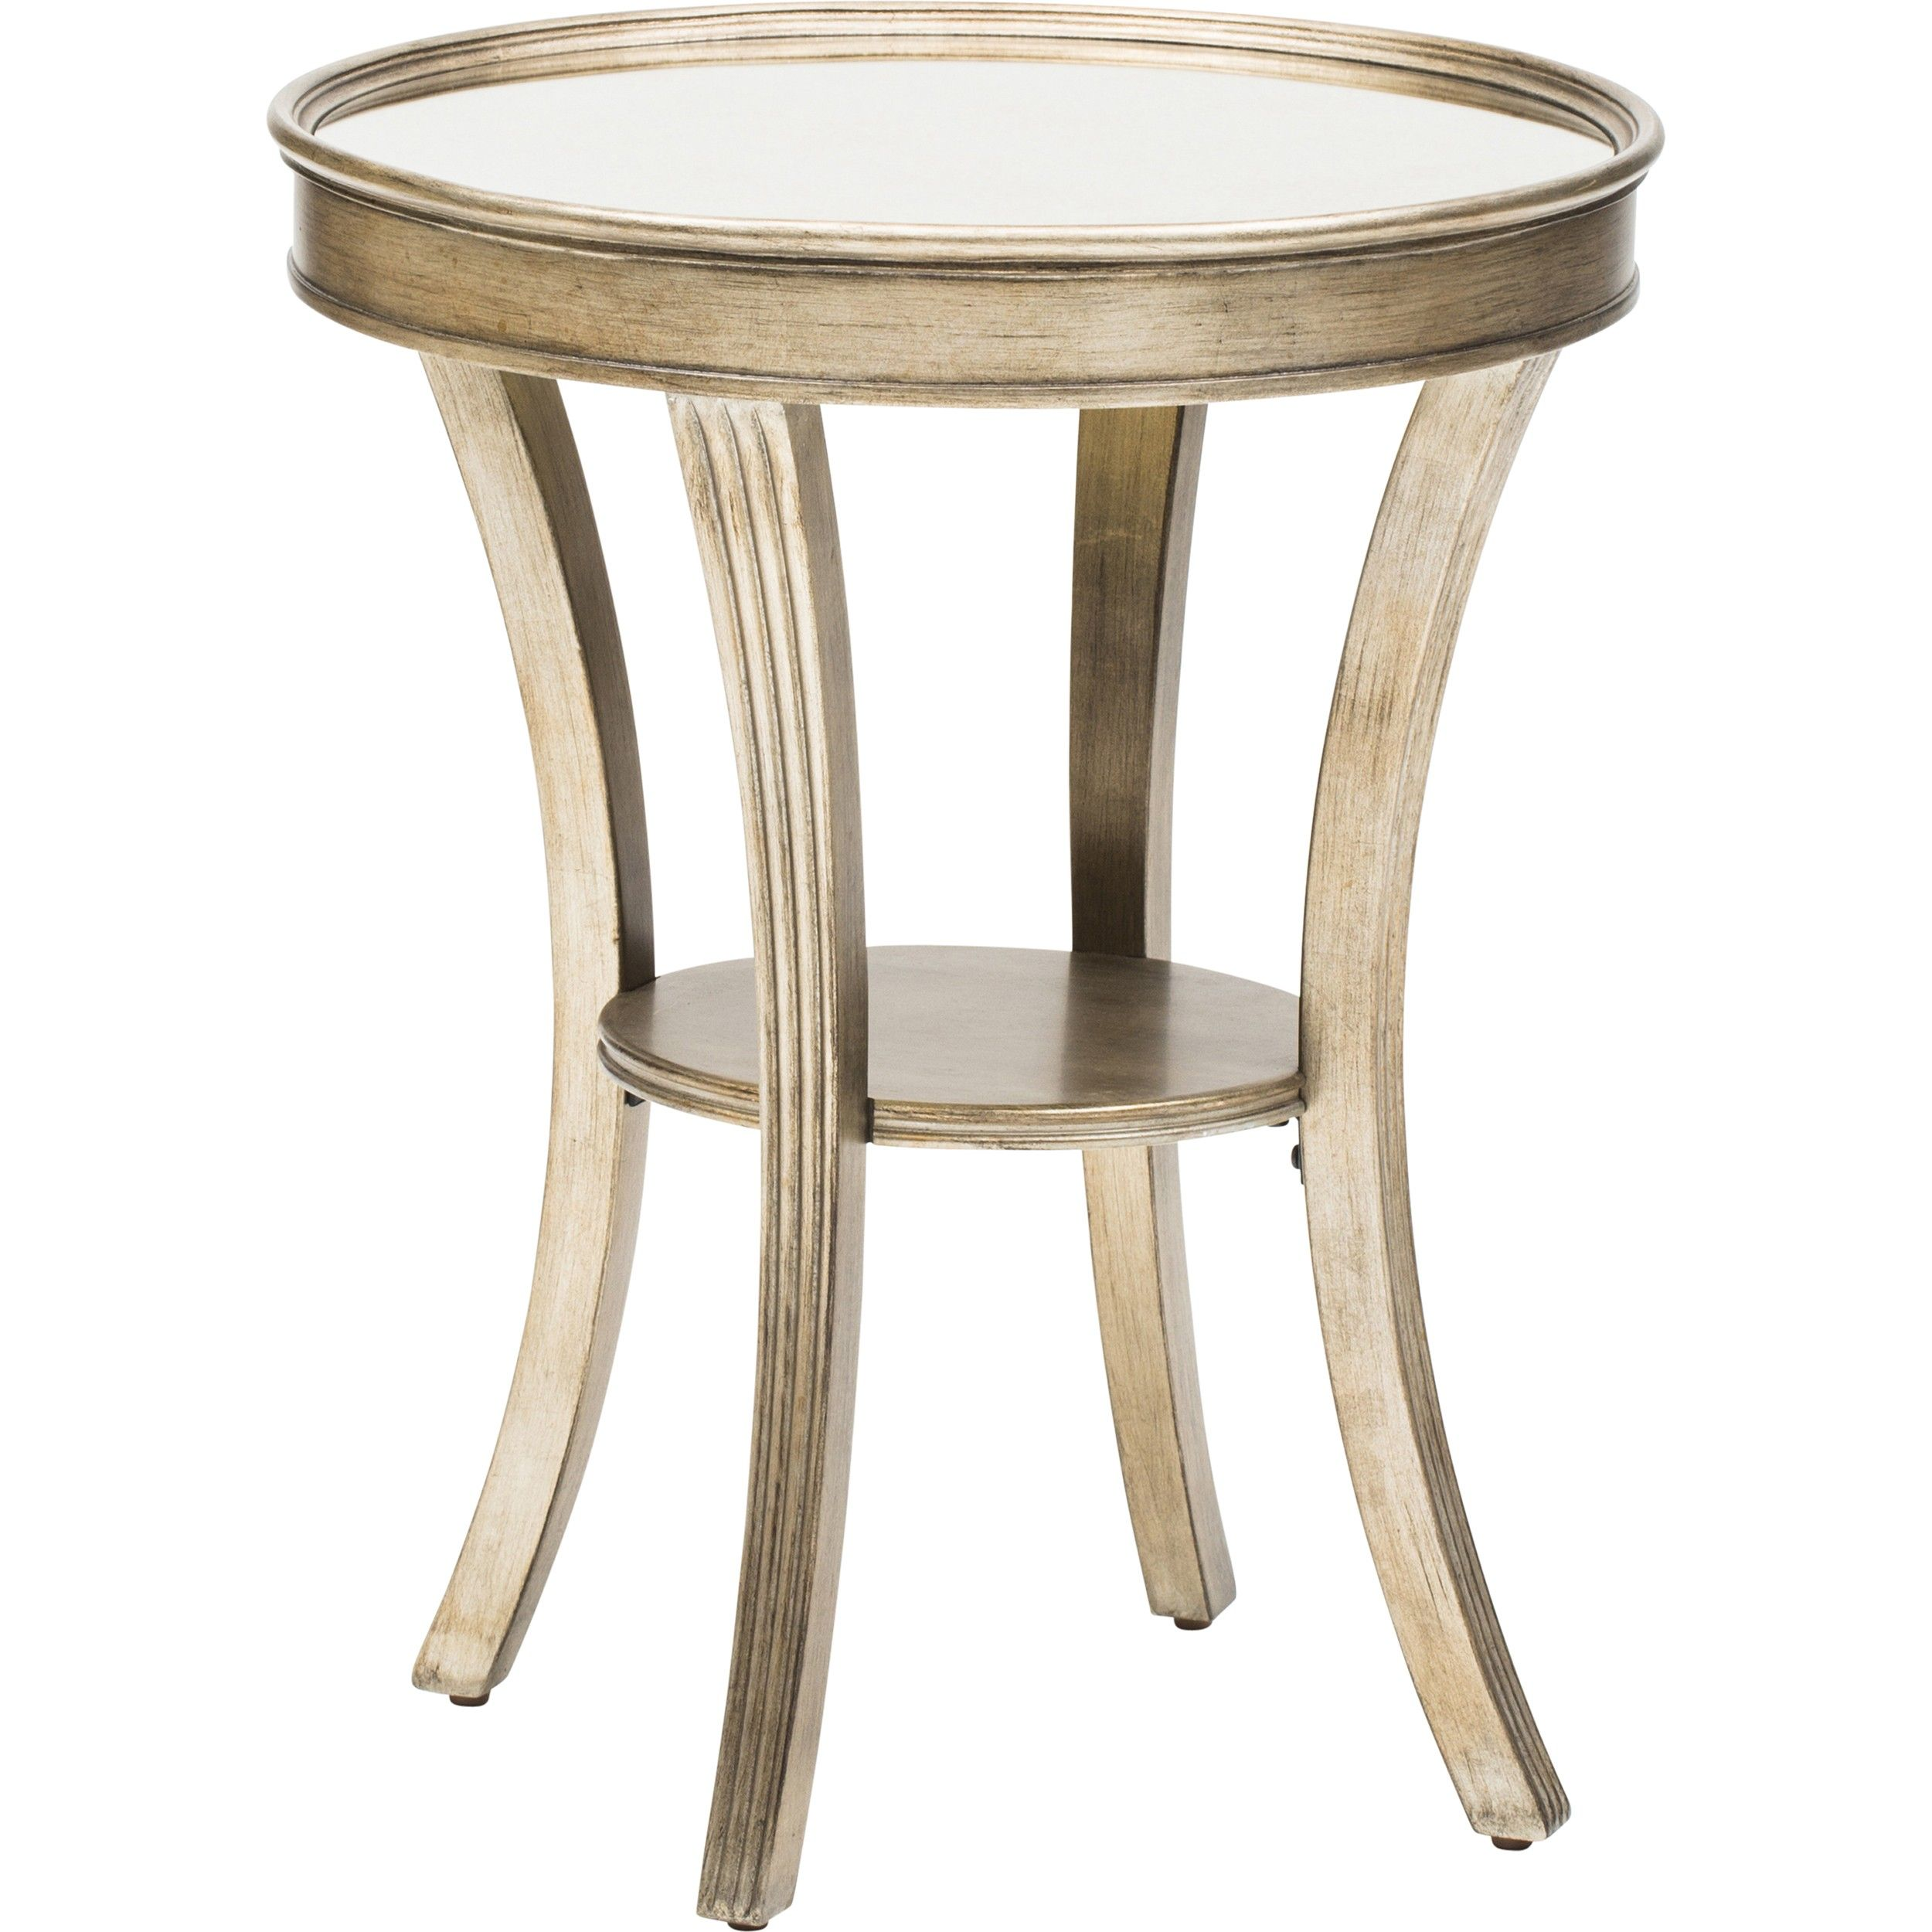 Round Mirror Accent Table Mirrored Accent Table Accent Table Accent Mirrors